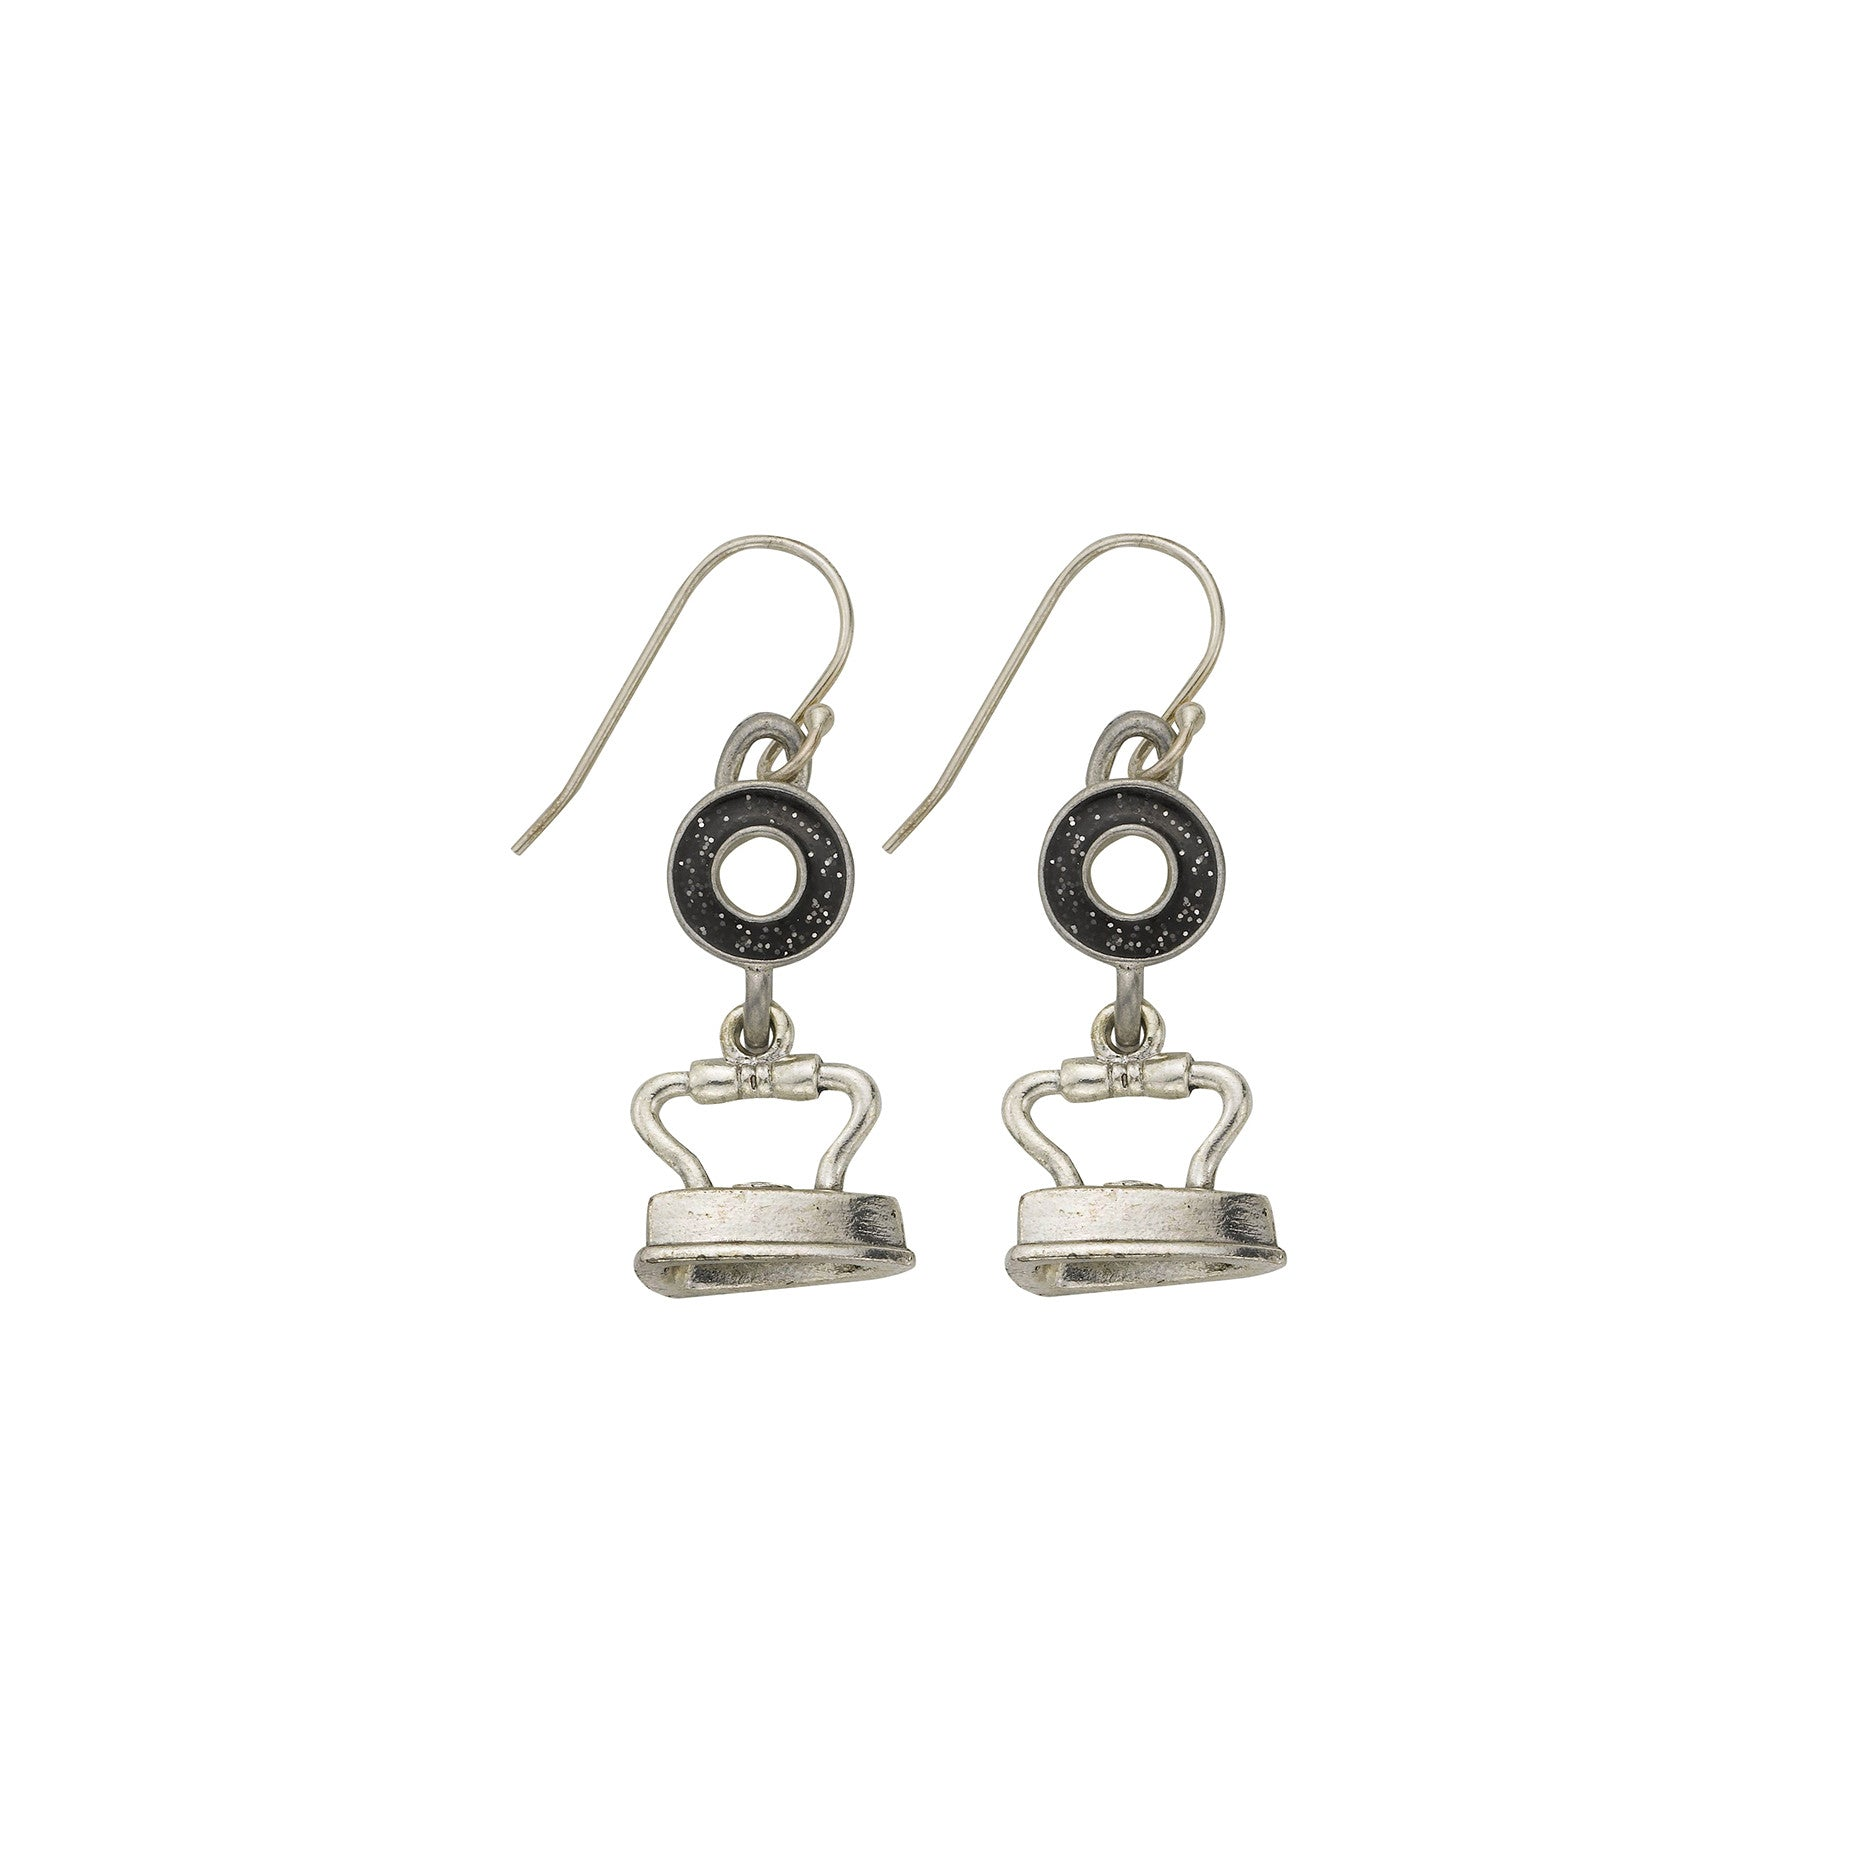 Black Iron Earrings - SamandNan